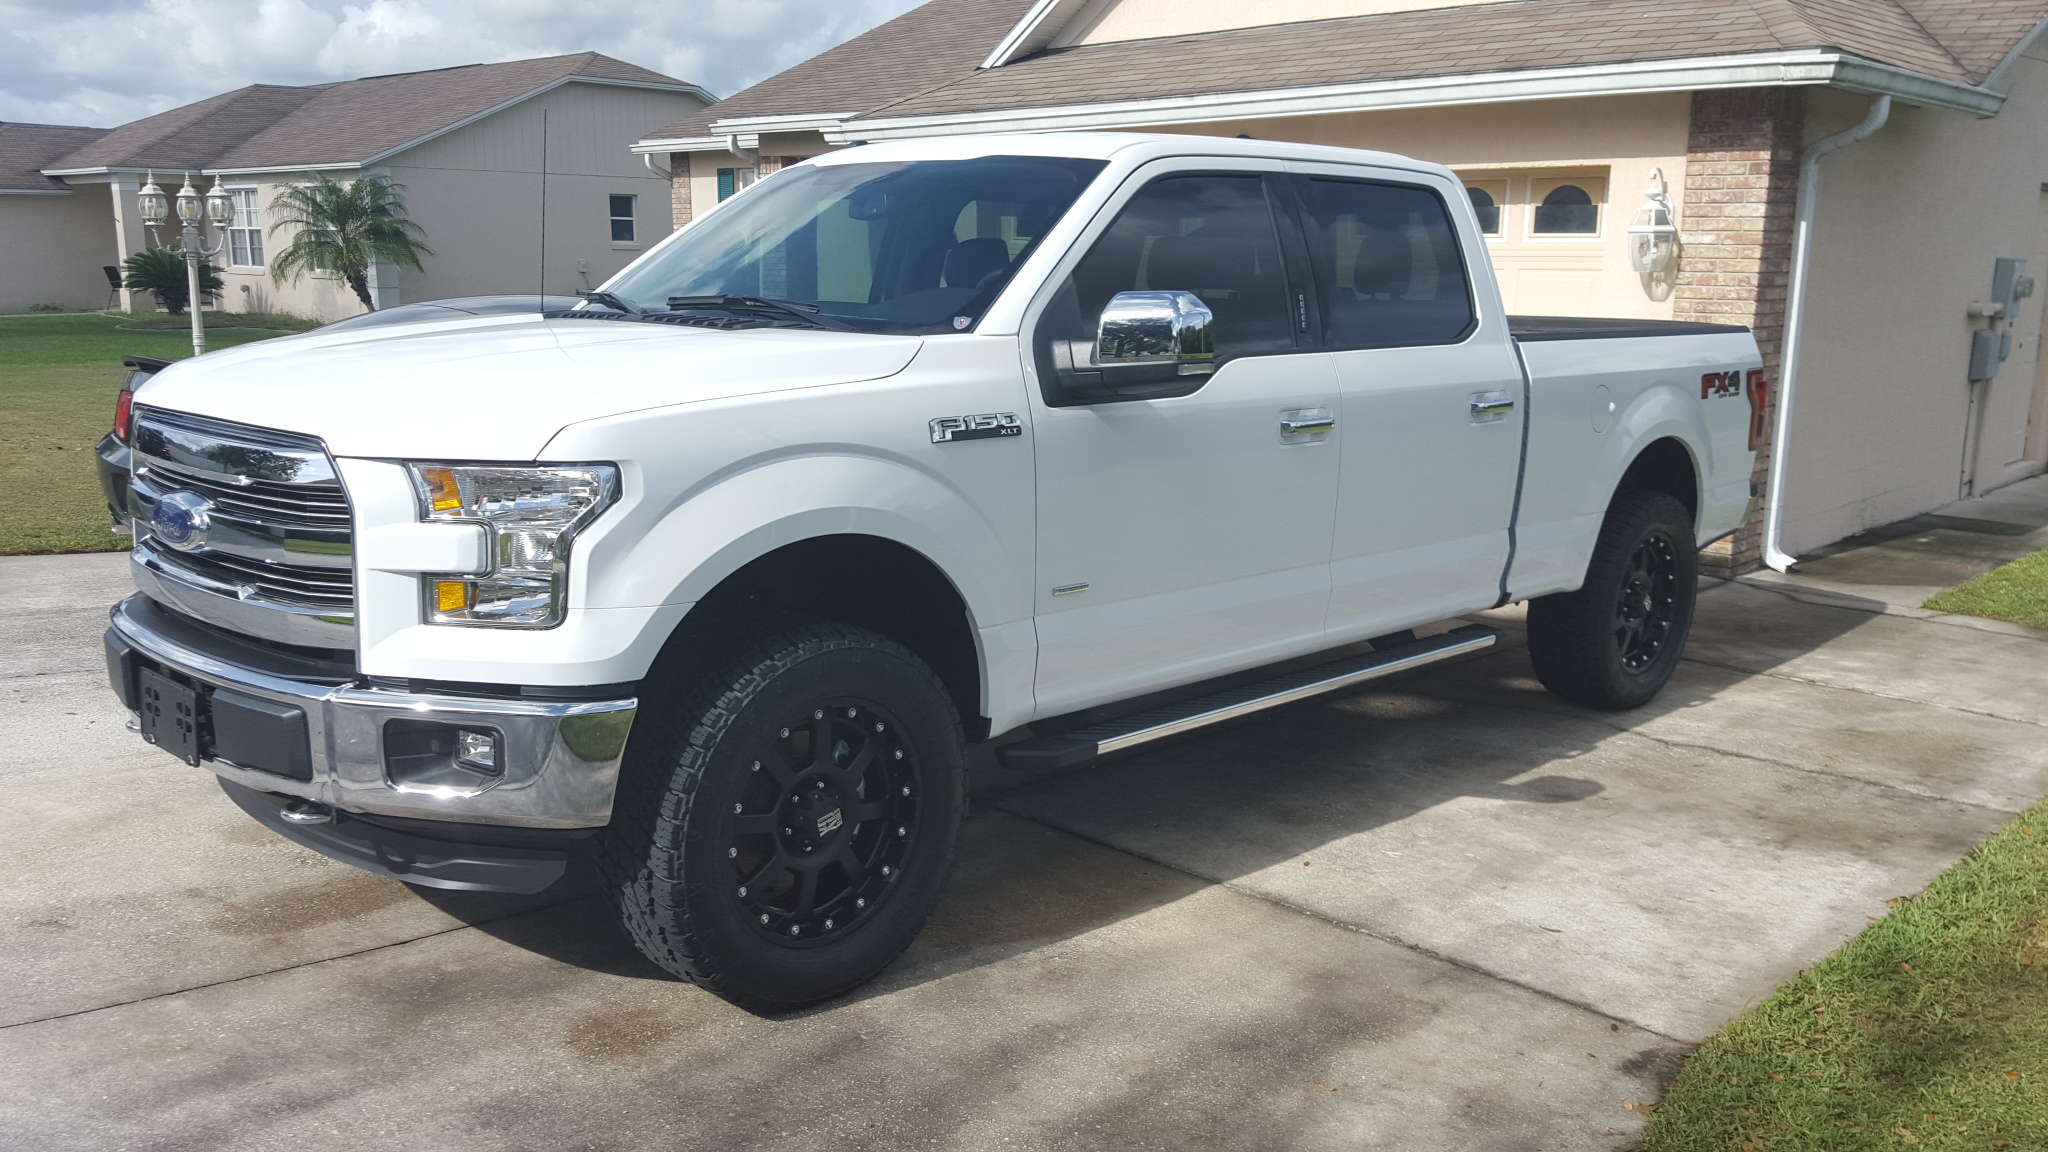 Pro comp 25 inch Level  Ford F150 Forum  Community of